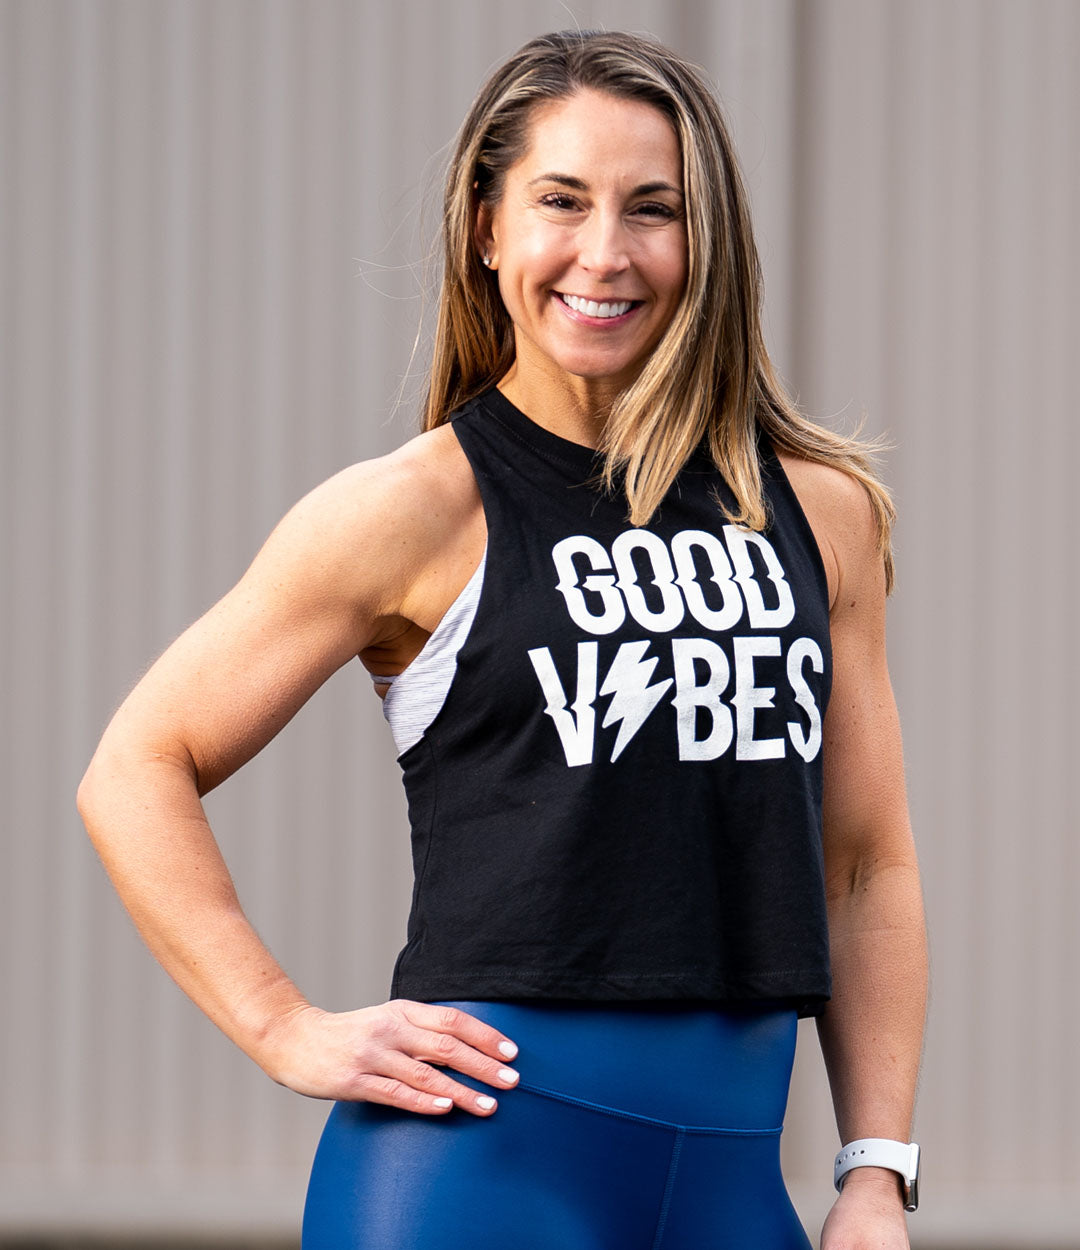 Good Vibes White on Black Crop Tank